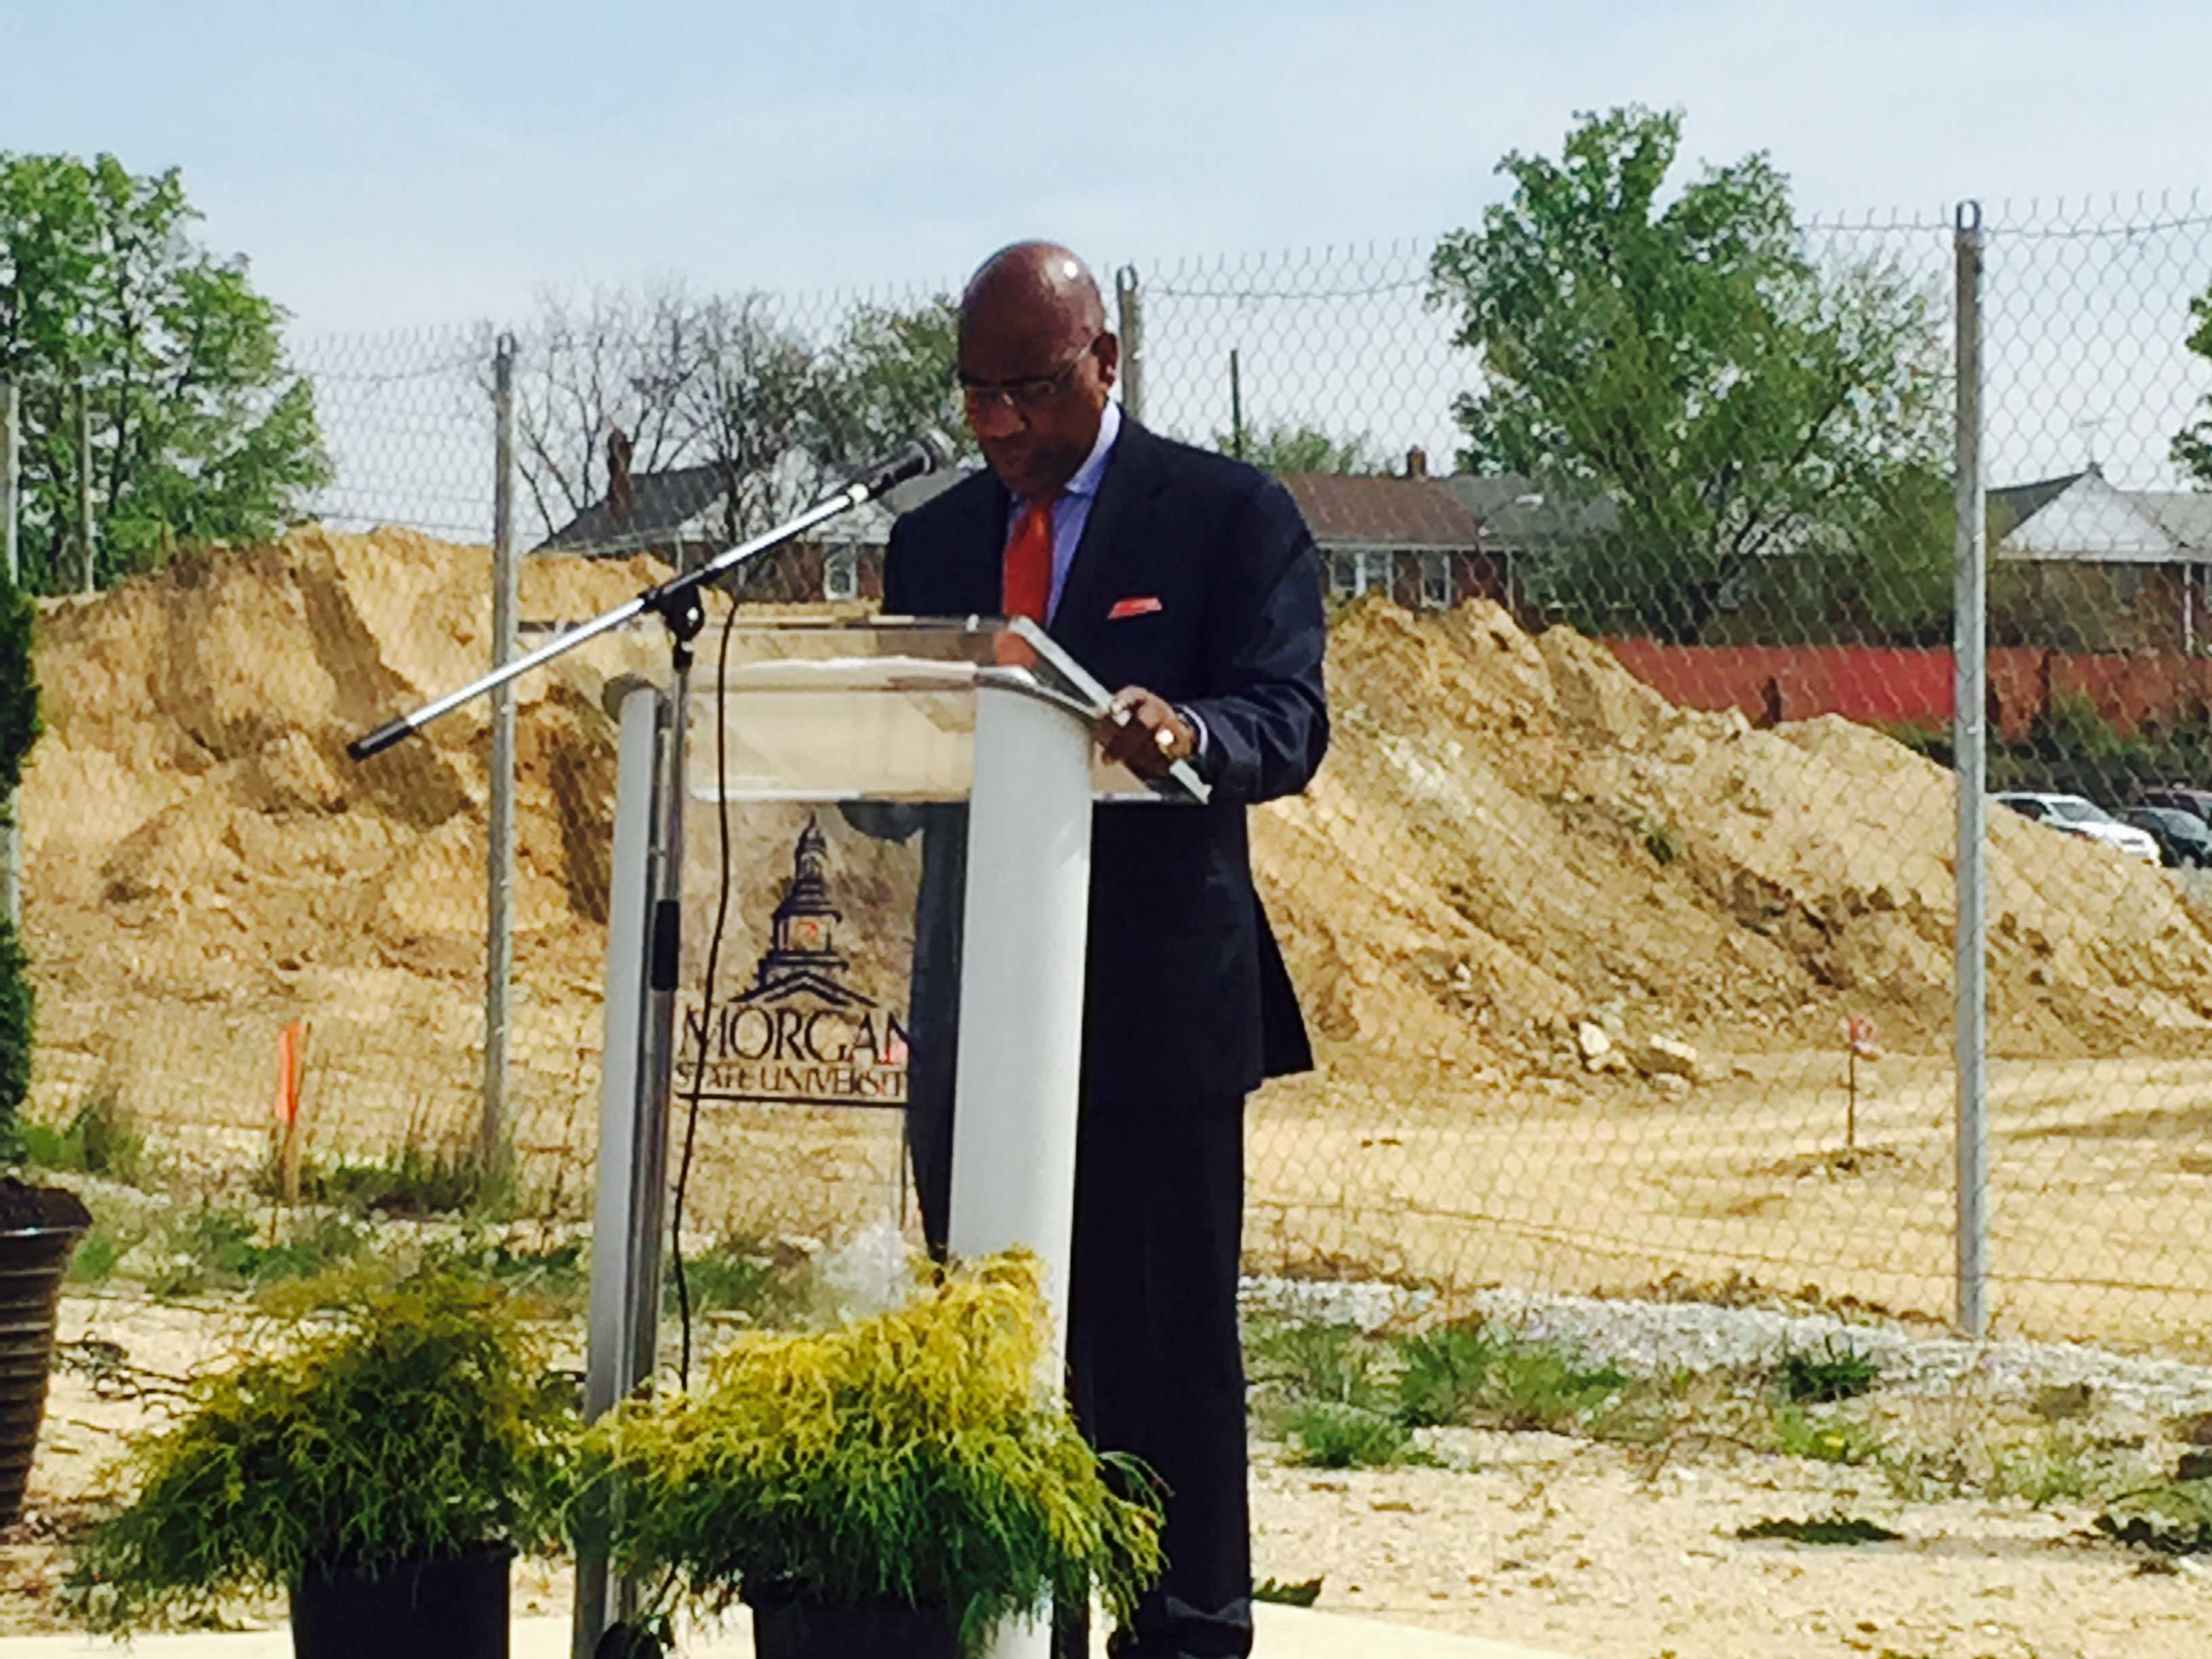 Morgan State University President, David Wilson, speaks at the ceremony for the new Science Center.